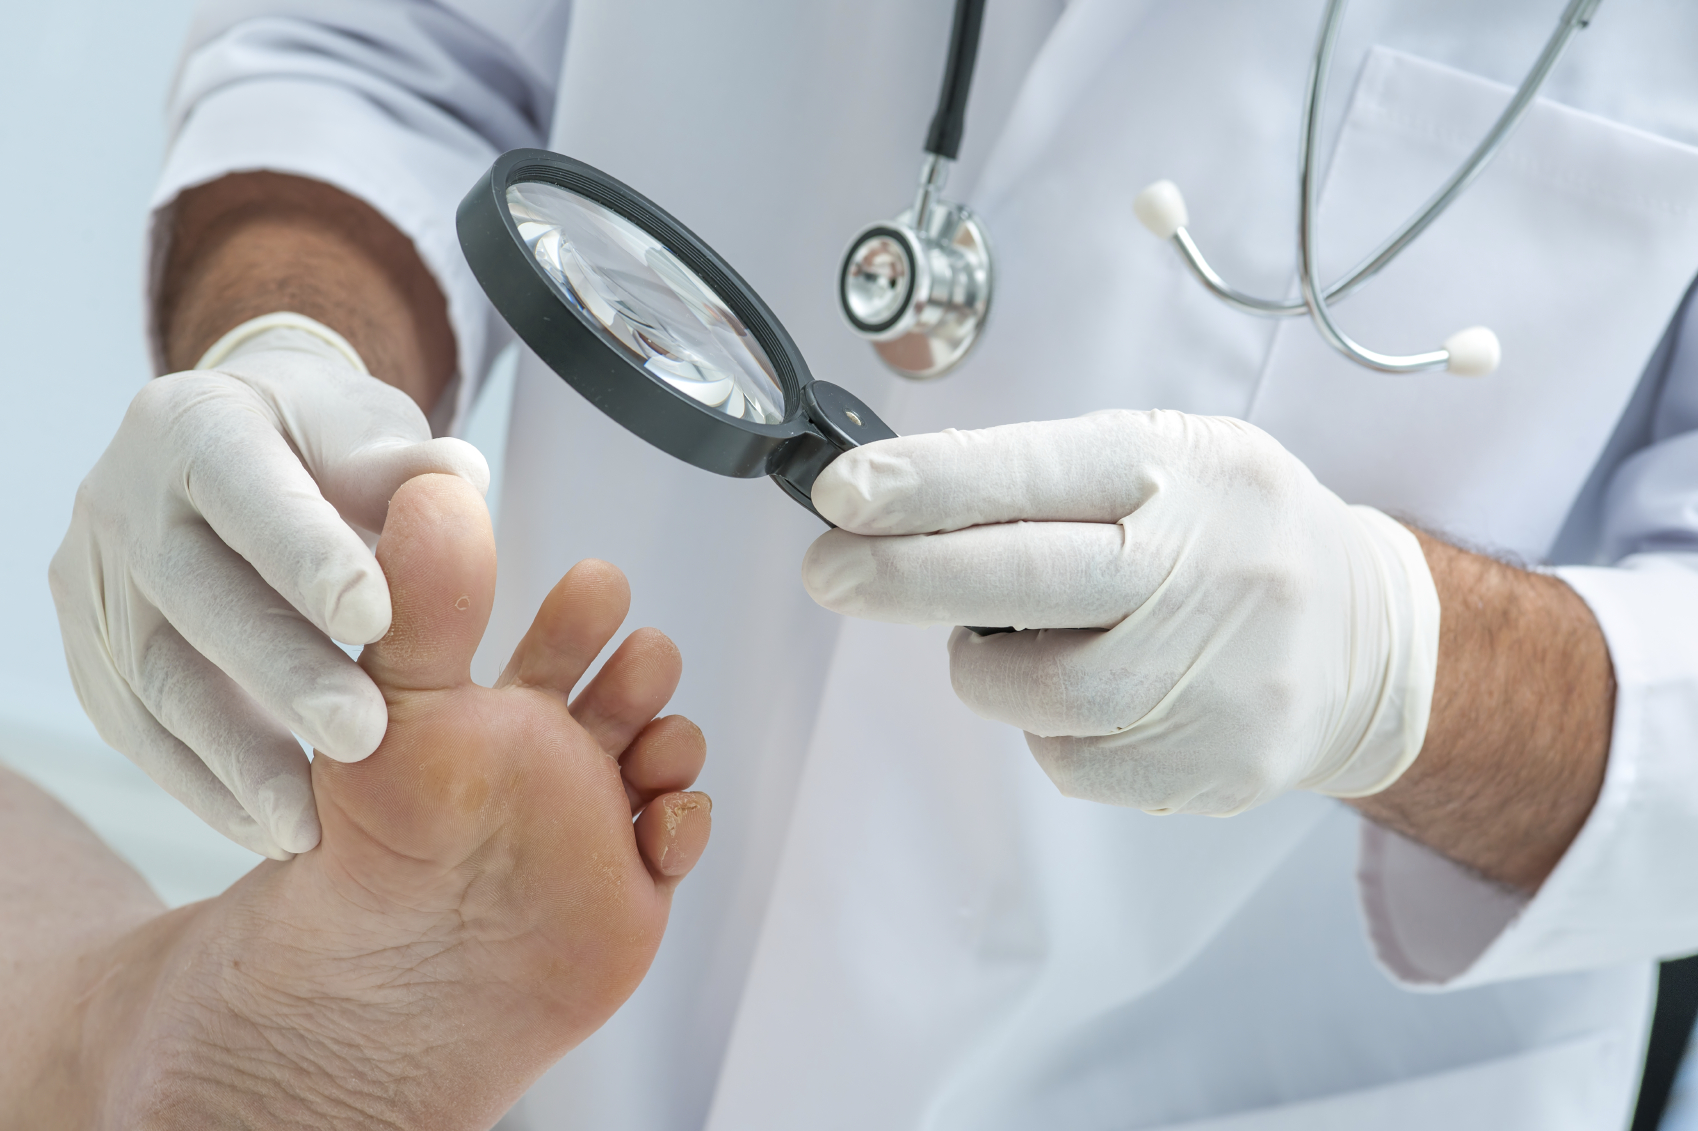 dermatologist examines the foot on the presence of athlete's foot